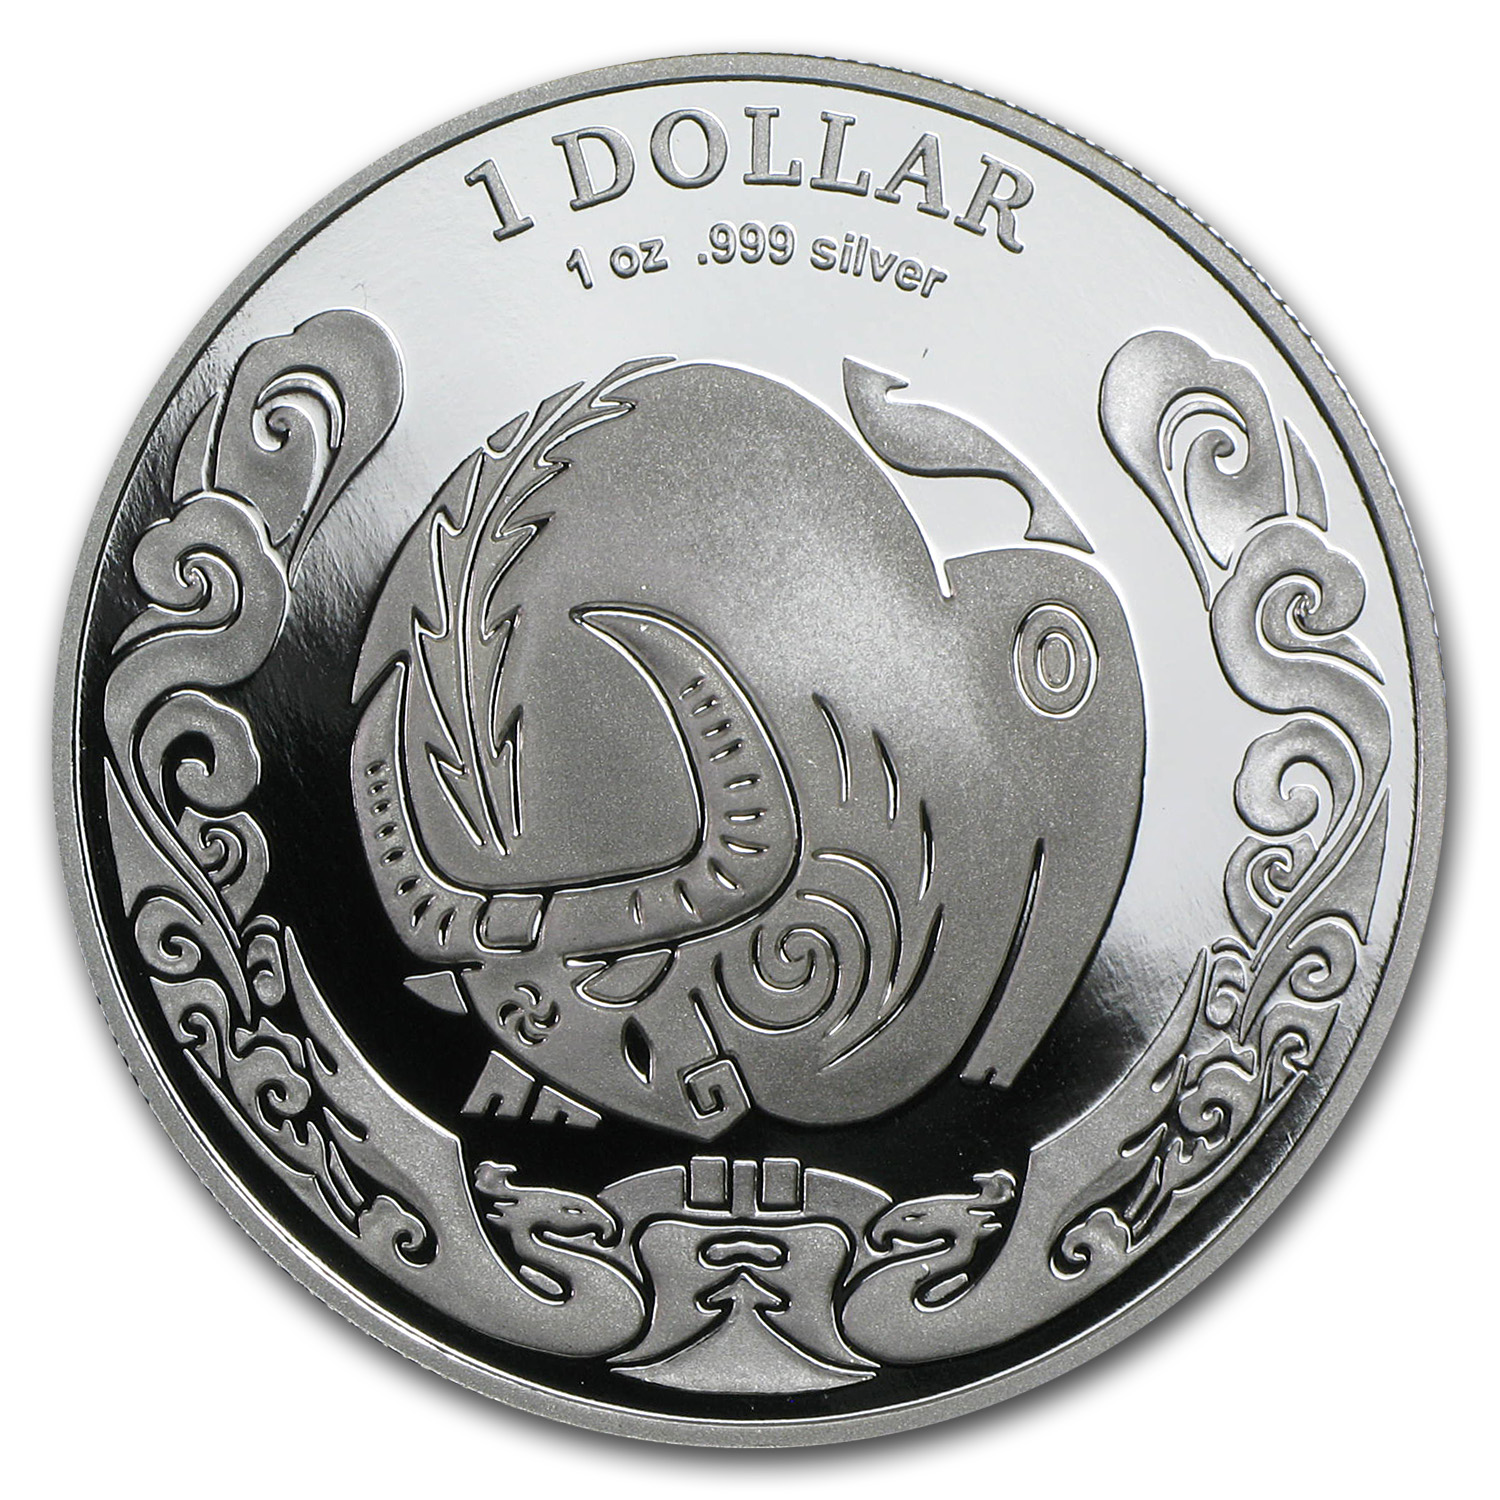 2009 Australia 1 oz Silver Year of the Ox Proof